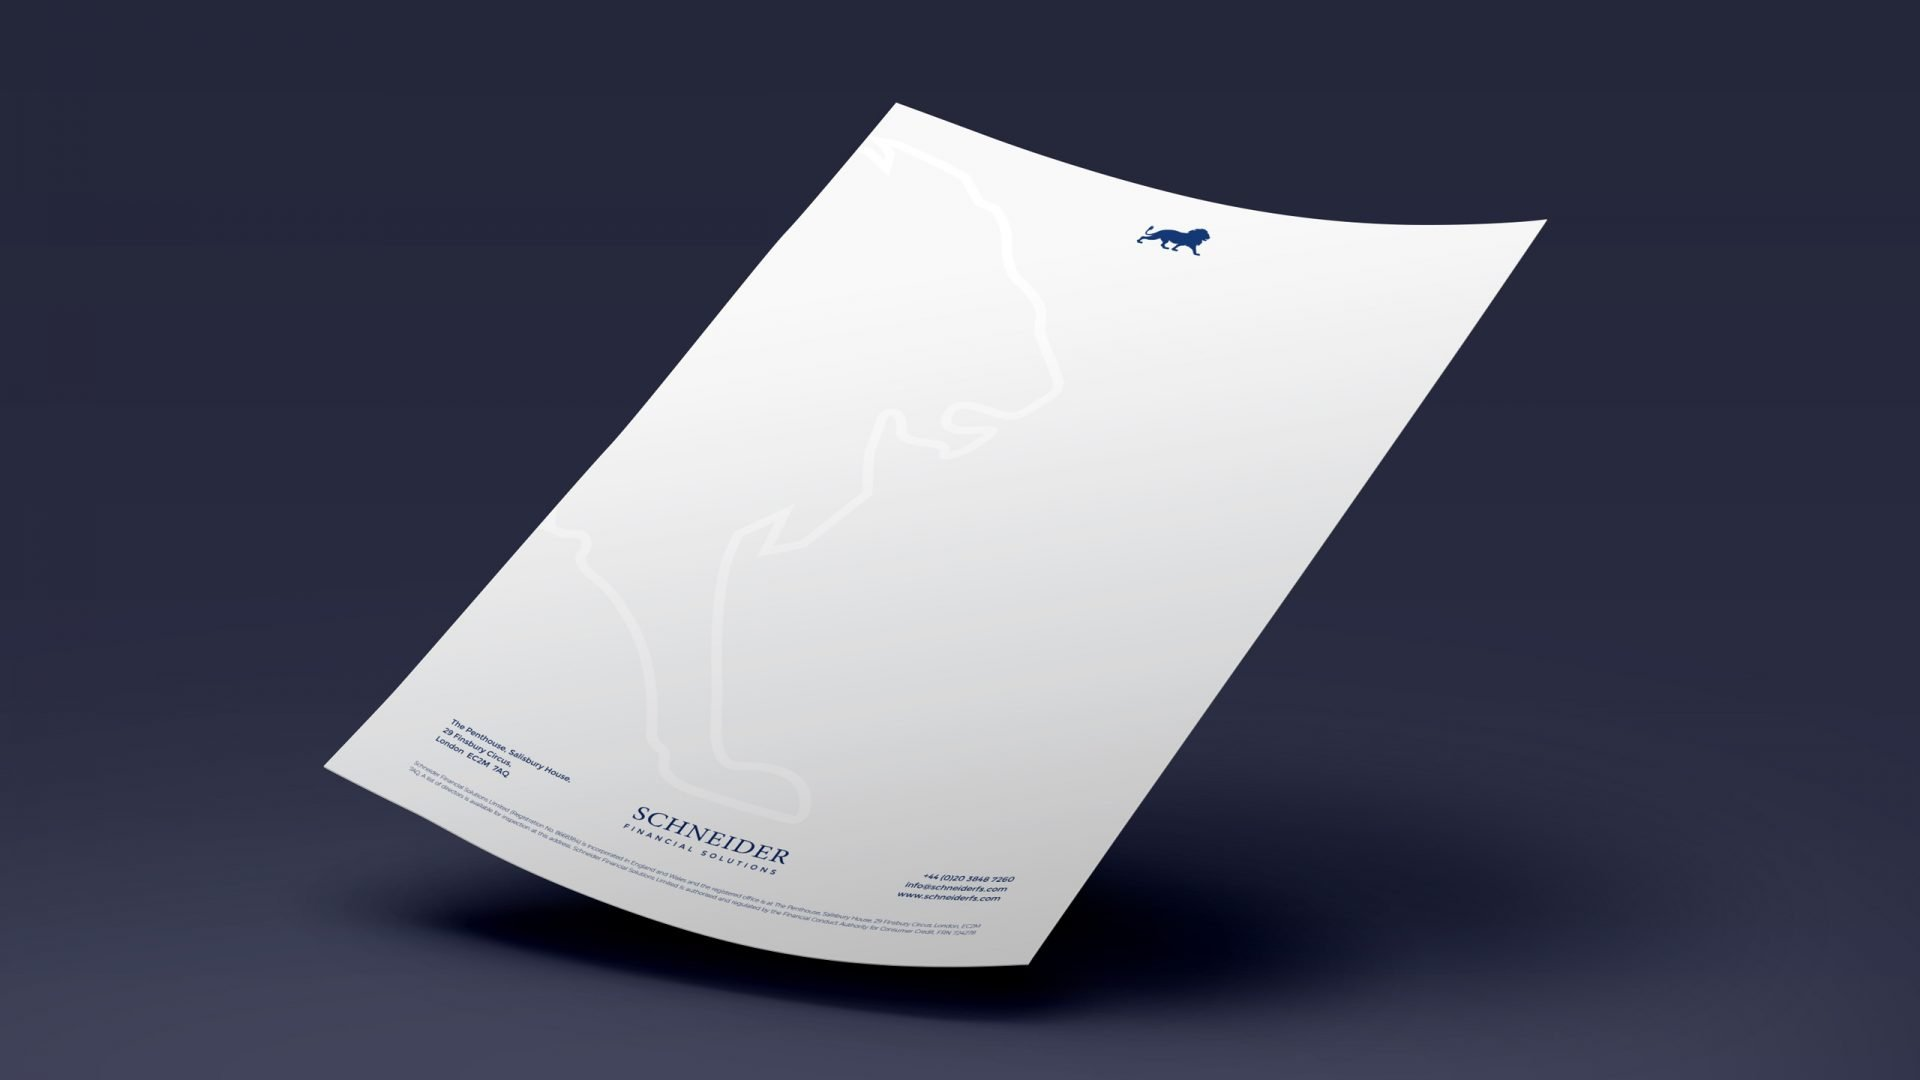 Crate47 Schneider Financial Services rebranding and website design - Letterhead paper design